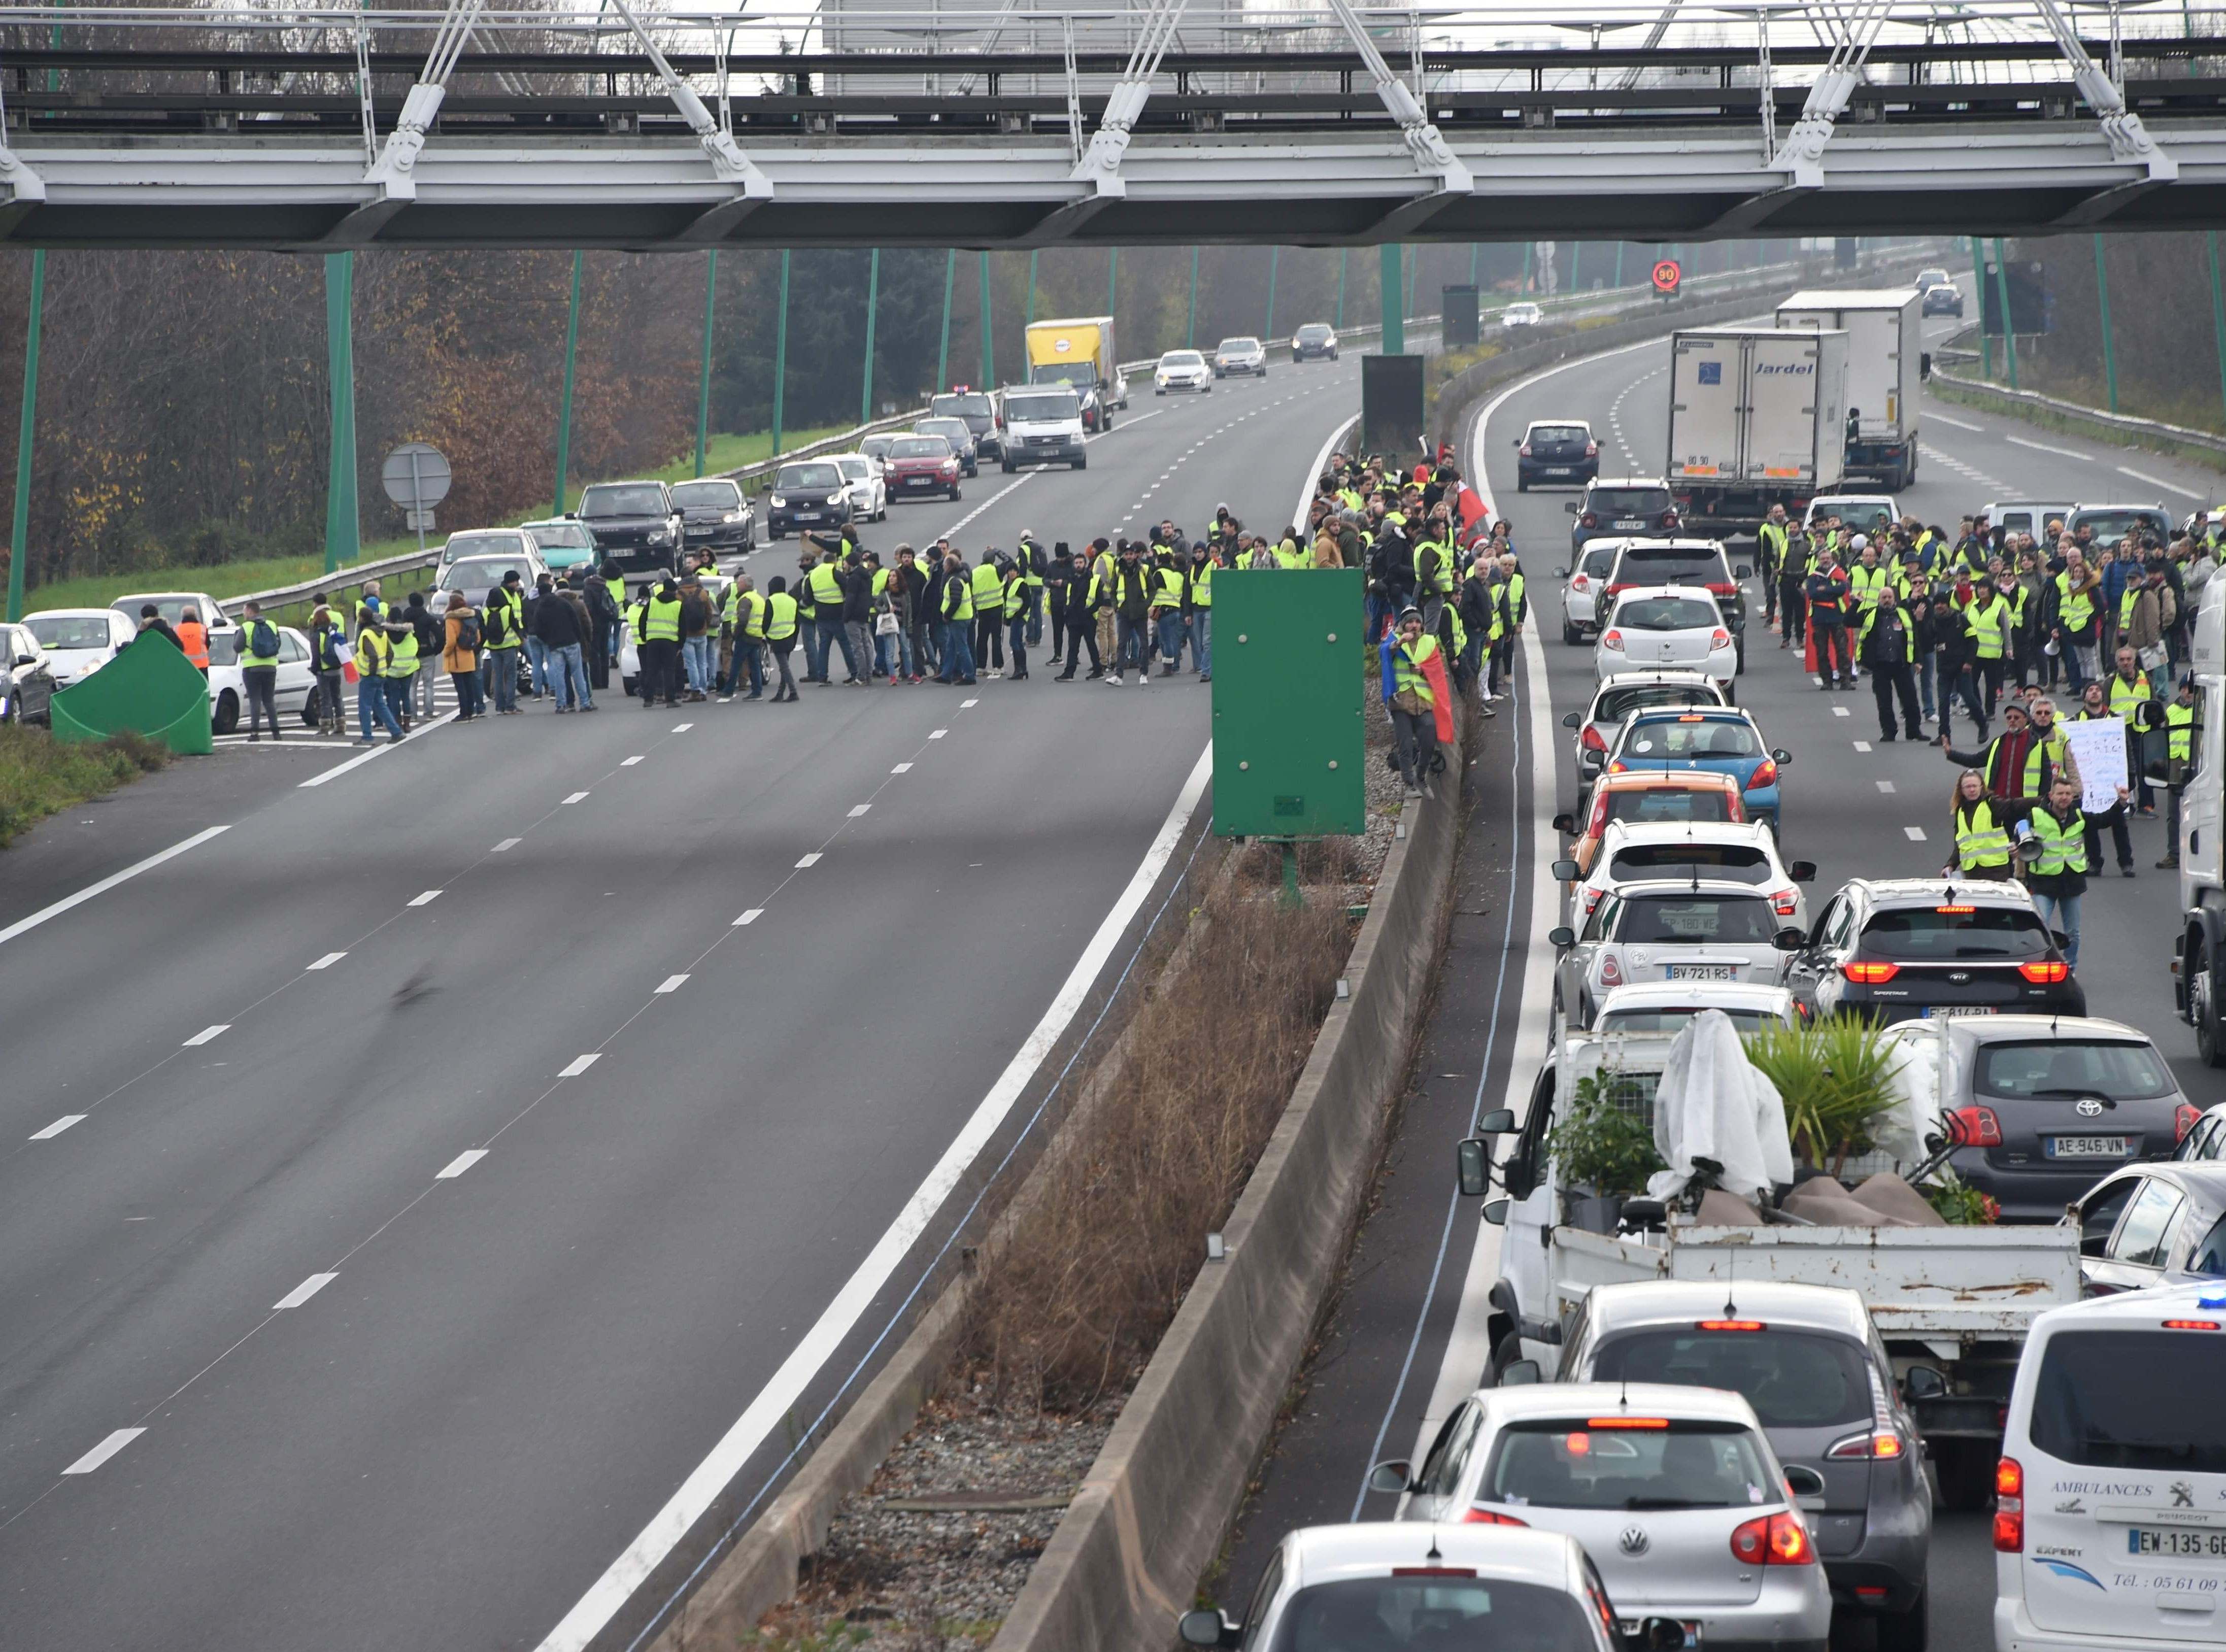 Protesters wearing yellow vests (gilets jaunes) block the ring road near La Roseraie district of Toulouse, on Dec. 15, 2018 as they demonstrate against rising costs of living they blame on high taxes.